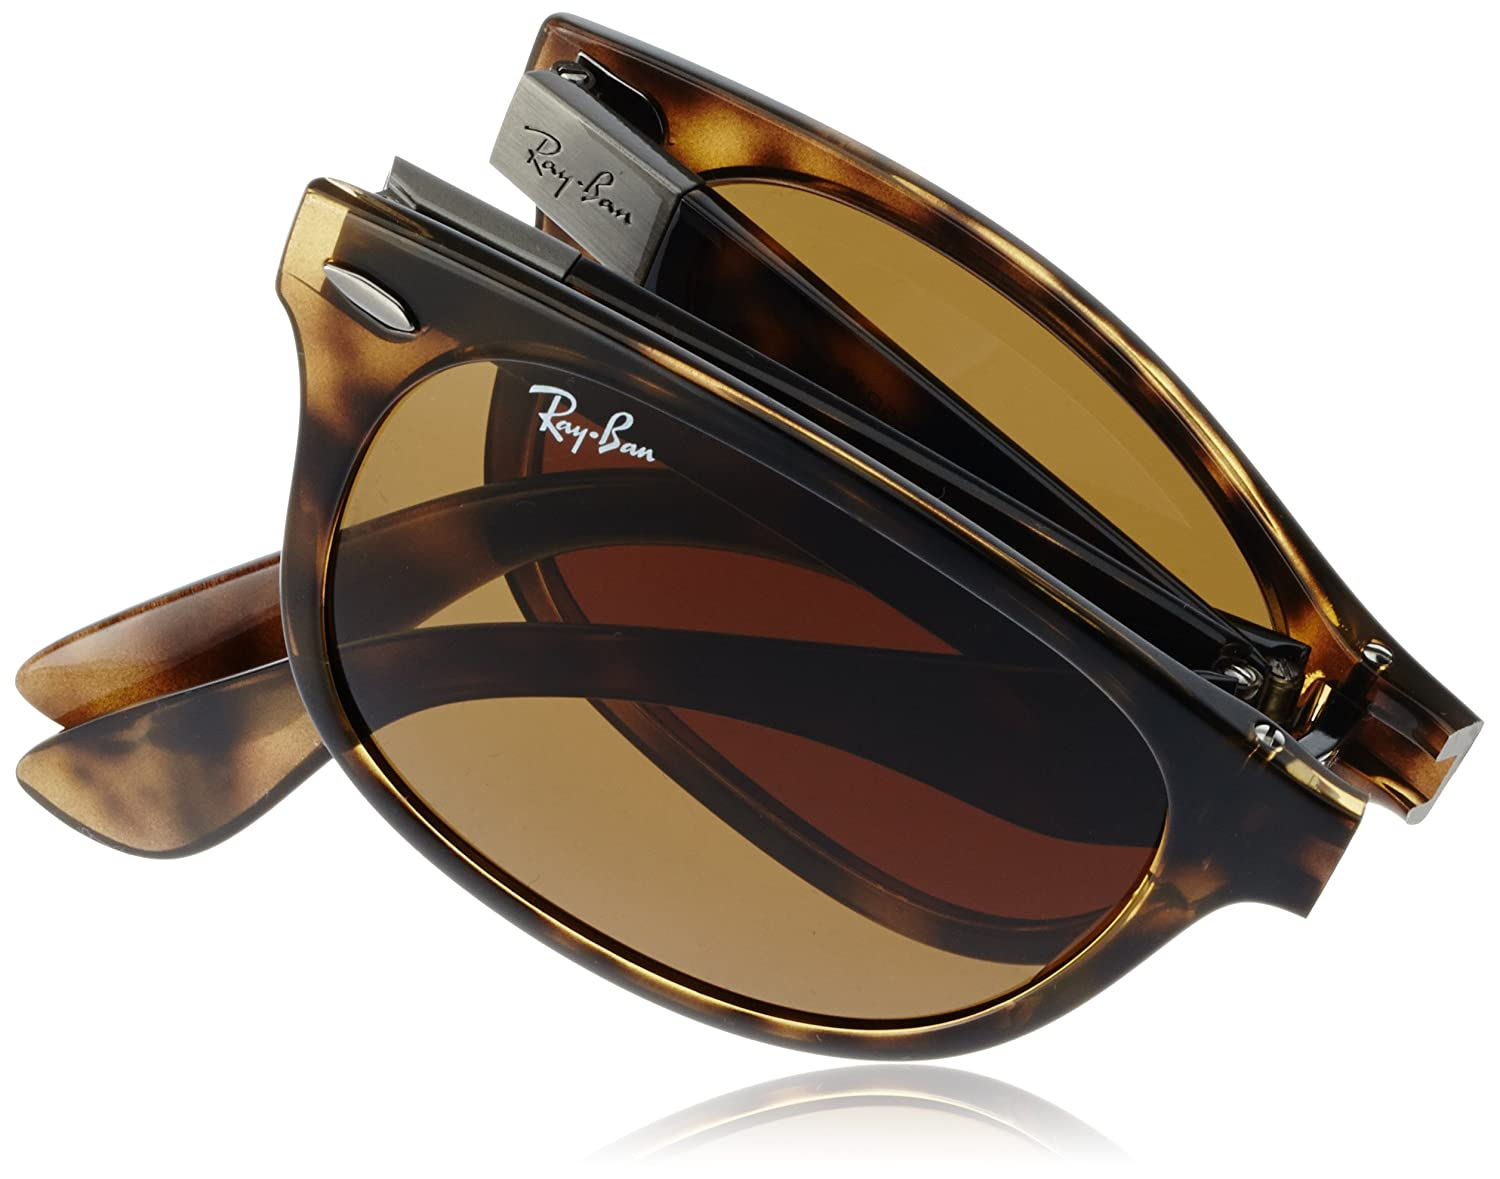 d6798983f1 Ray-Ban Unisex-Adult s RB4223 Sunglasses